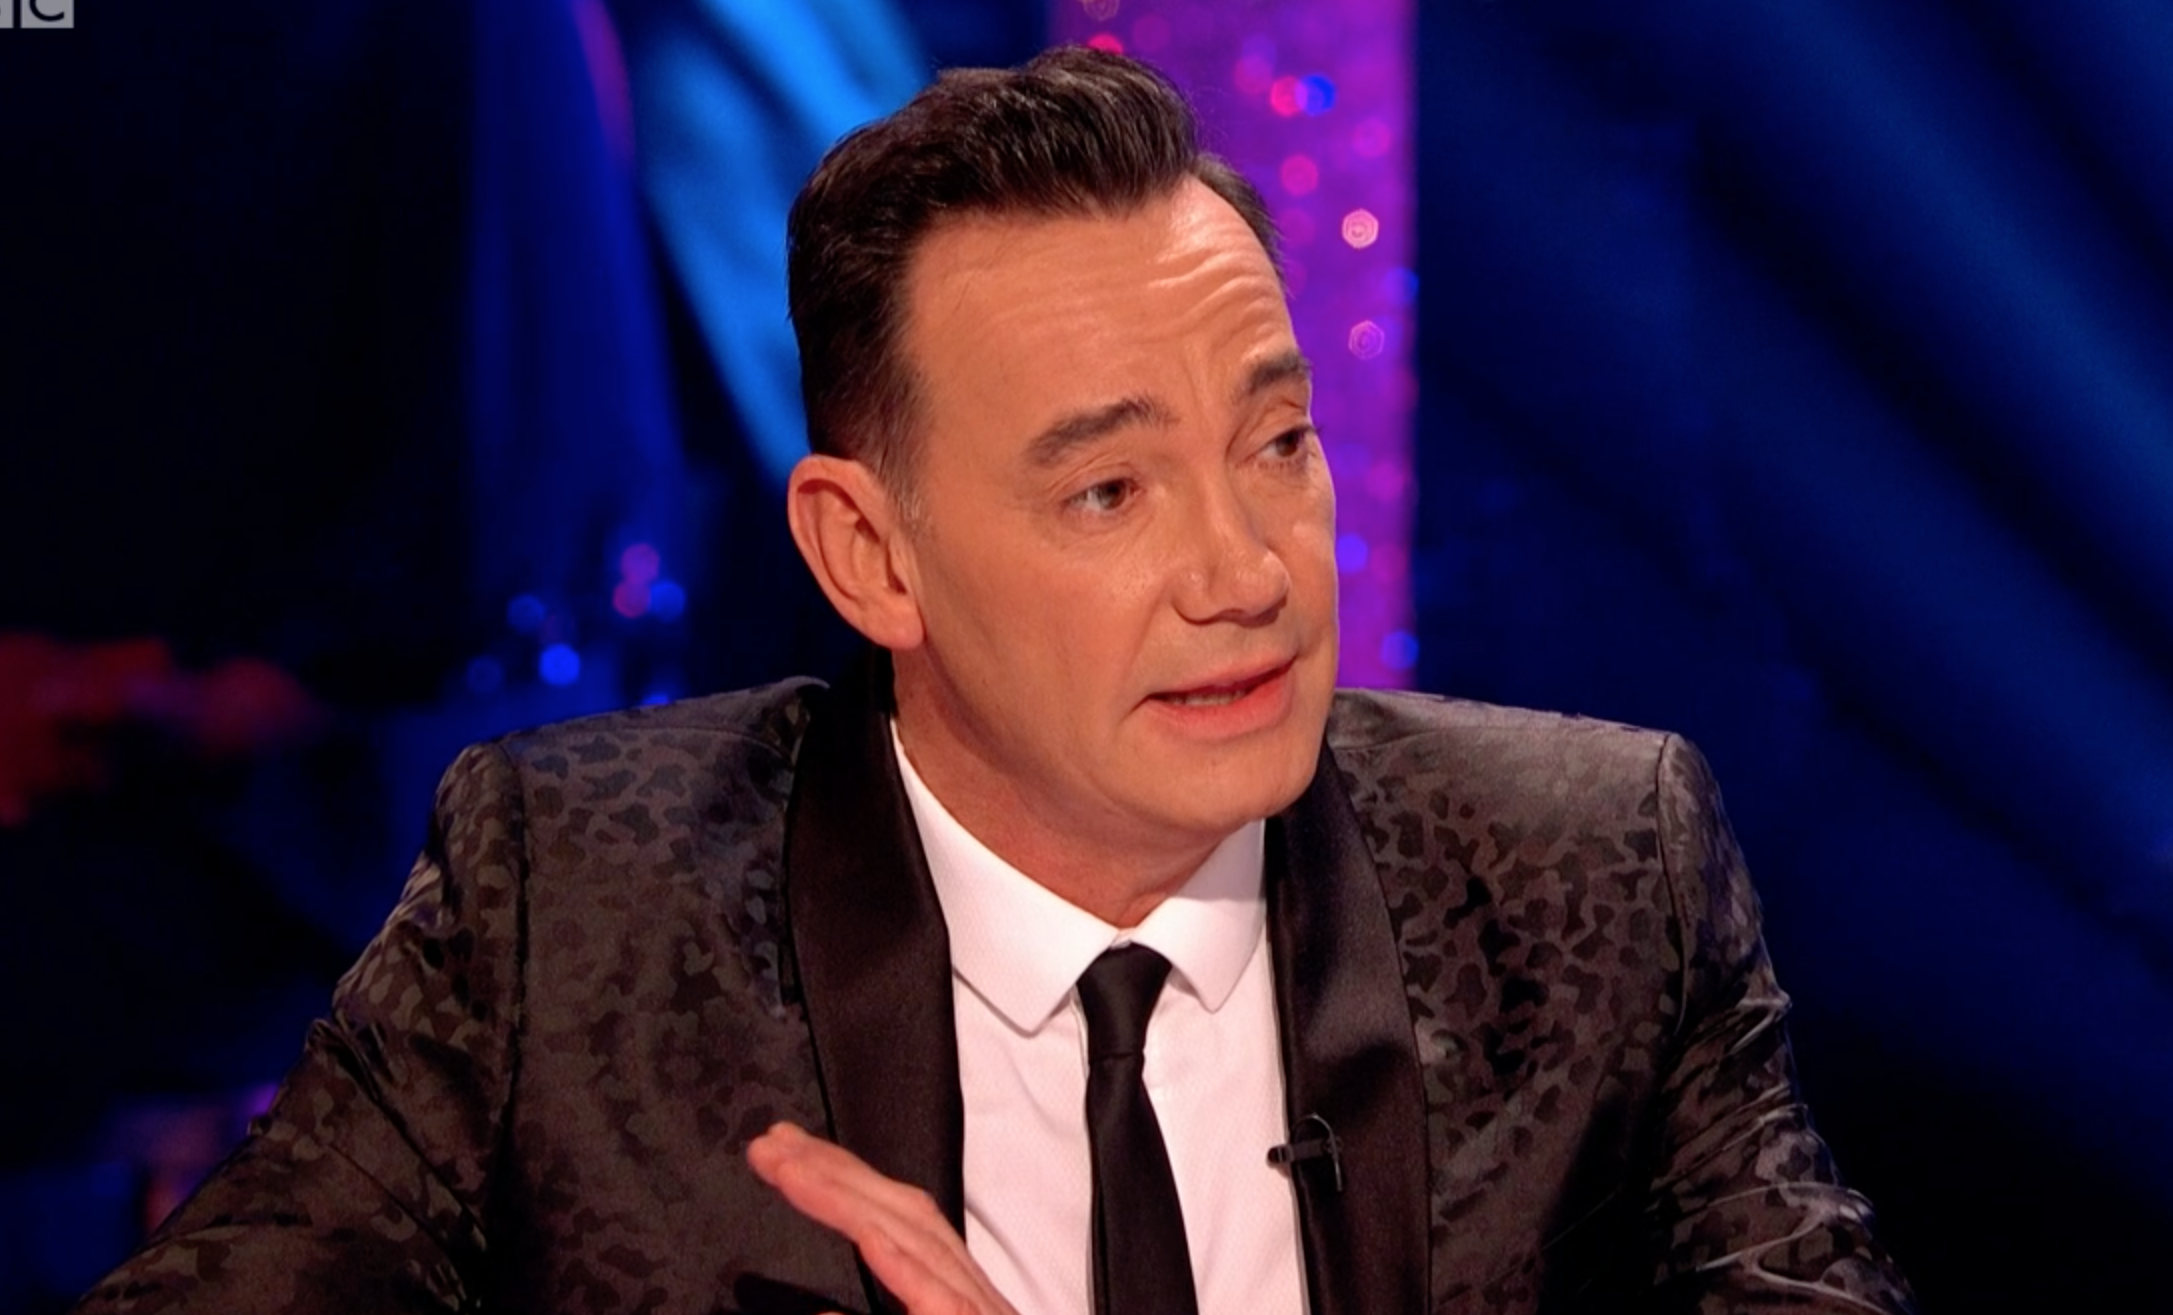 Strictly Come Dancing viewers blast Craig Revel Horwood over 'ridiculous' scores